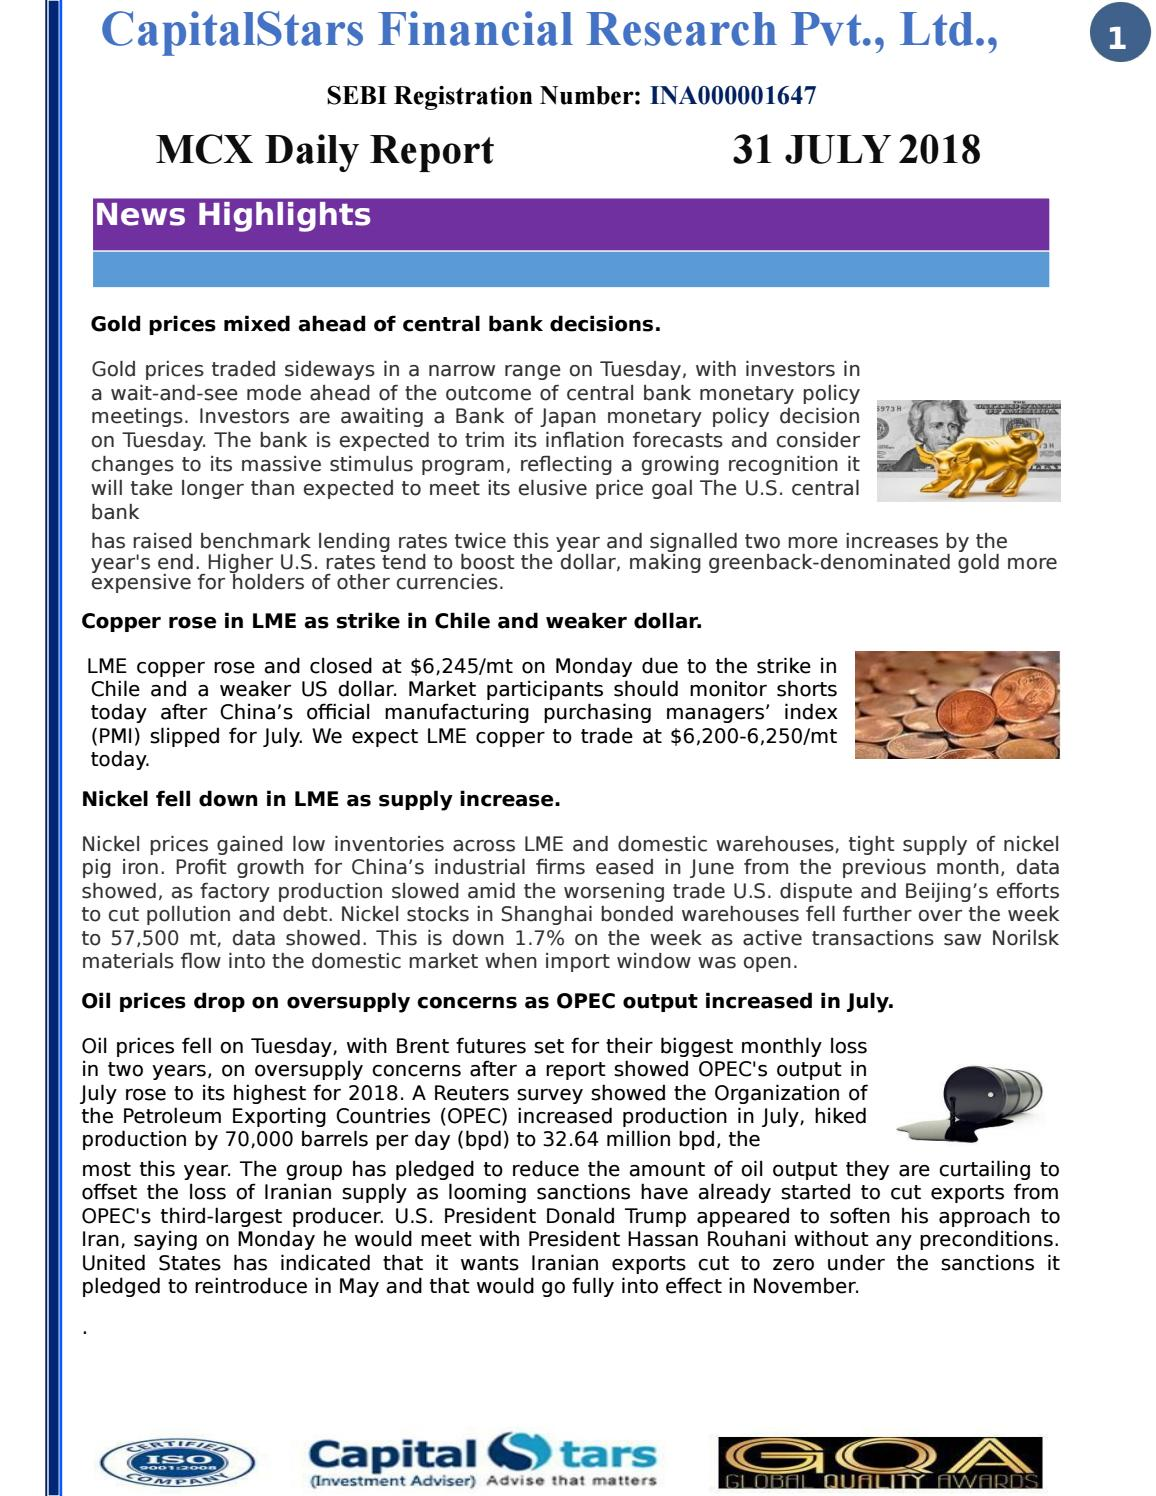 Daily Mcx Report by PurviMehta - issuu